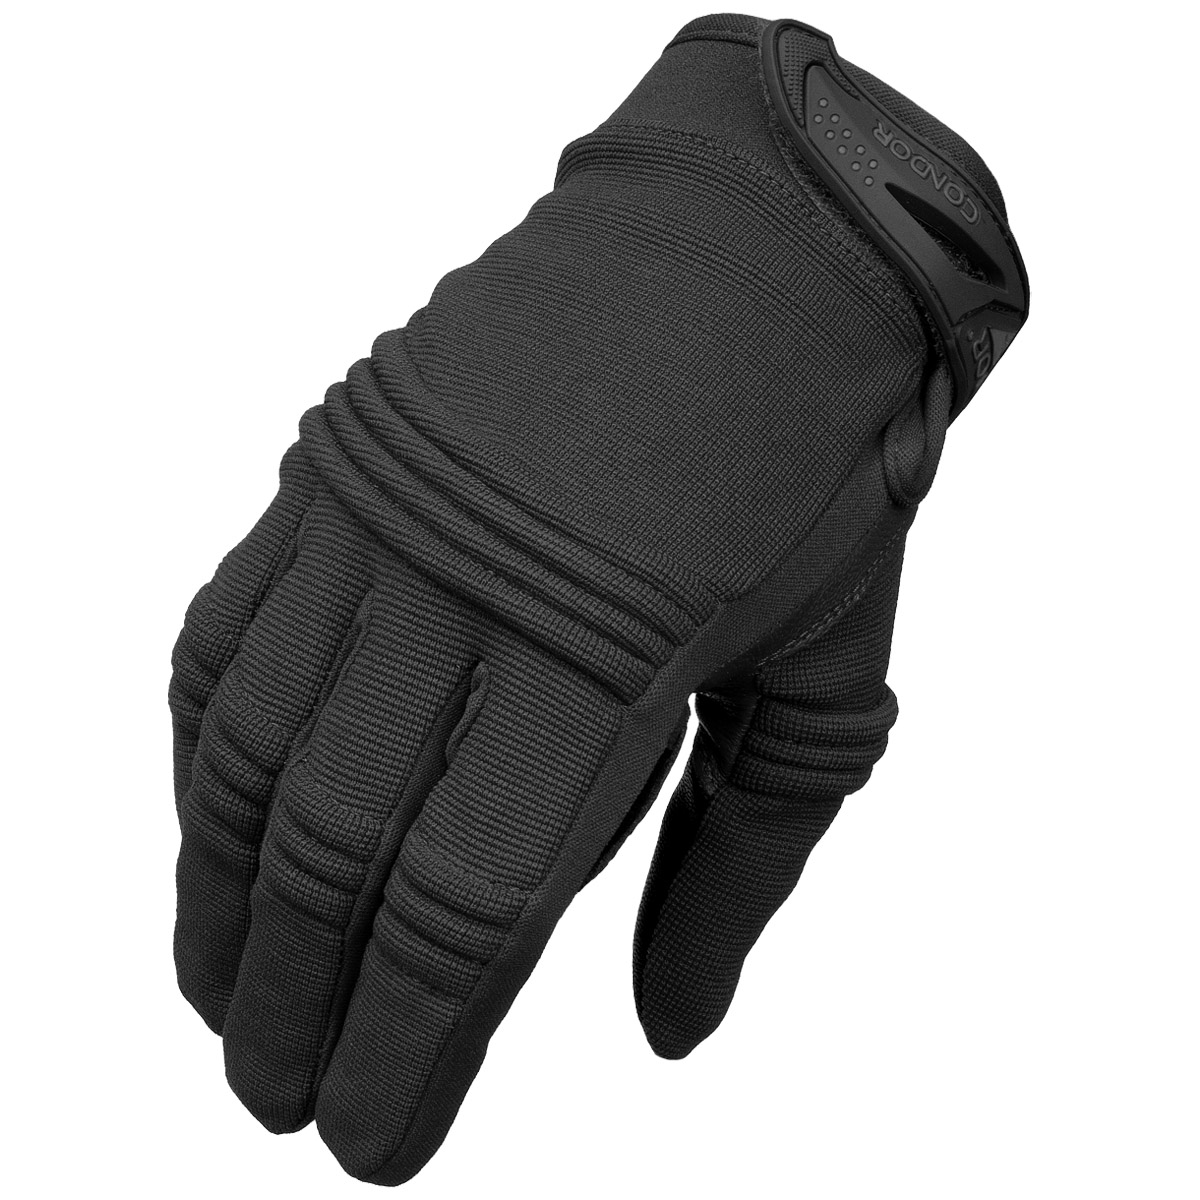 CONDOR TACTICIAN TACTILE COMBAT MENS TOUCHSCREEN GLOVES SECURITY OPERATOR BLACK